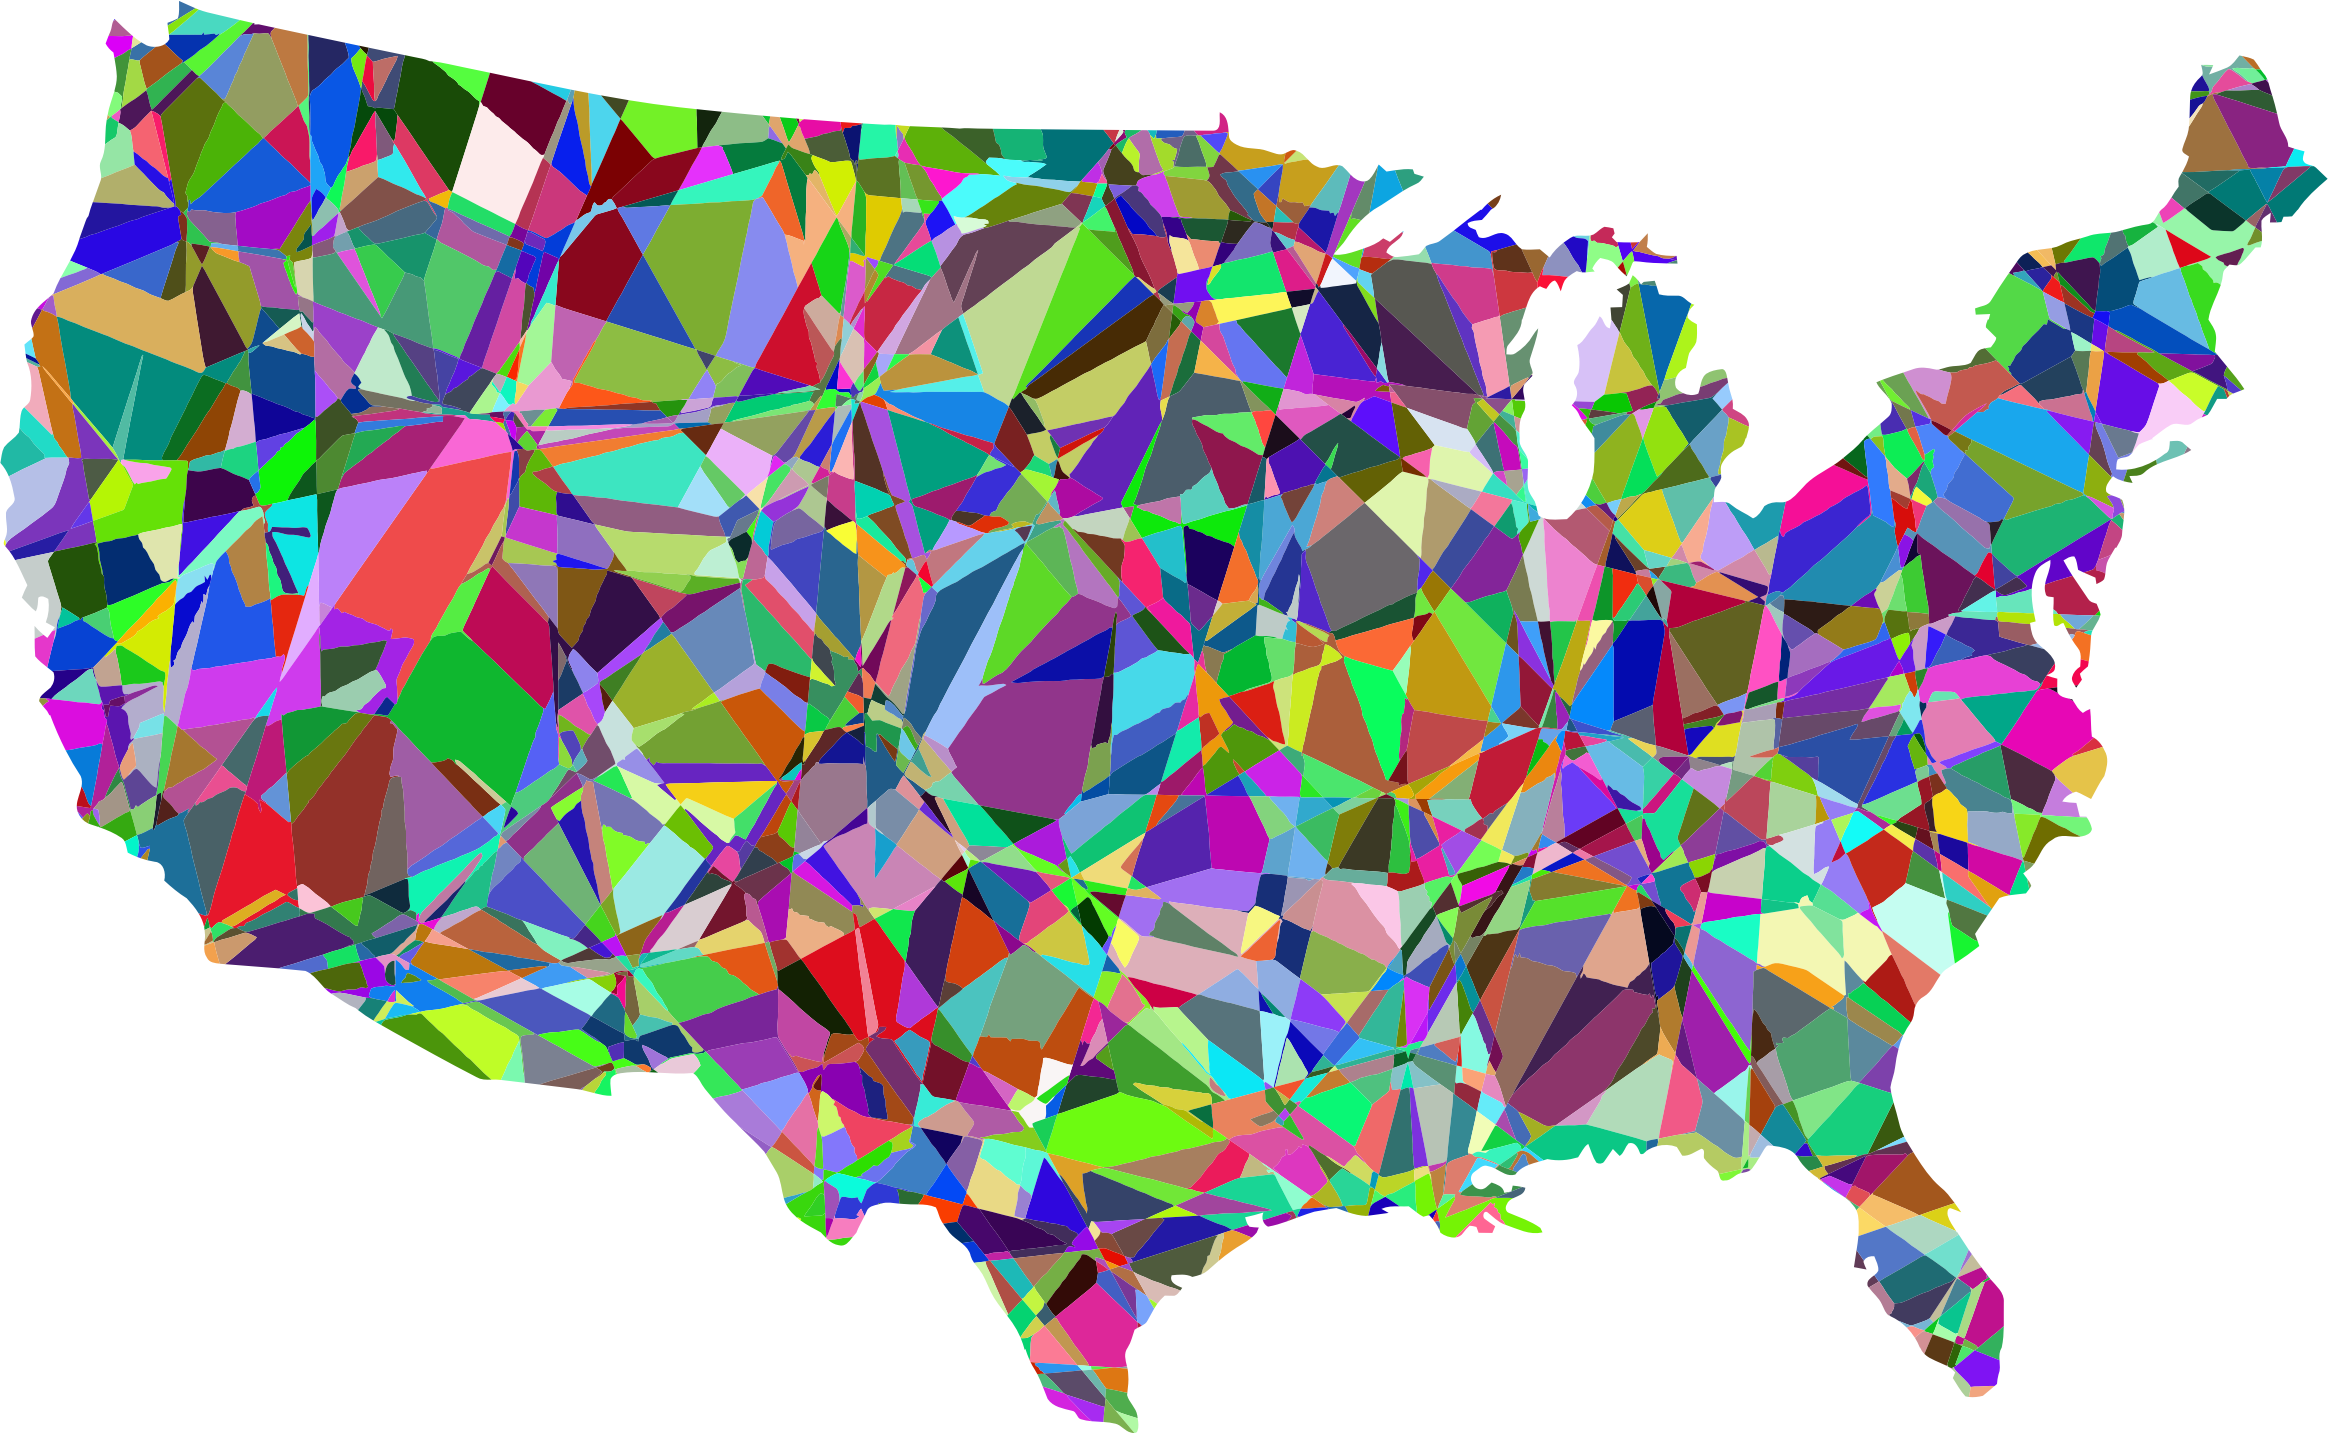 United states map clipart picture freeuse library Clipart - Technicolor United States Map picture freeuse library